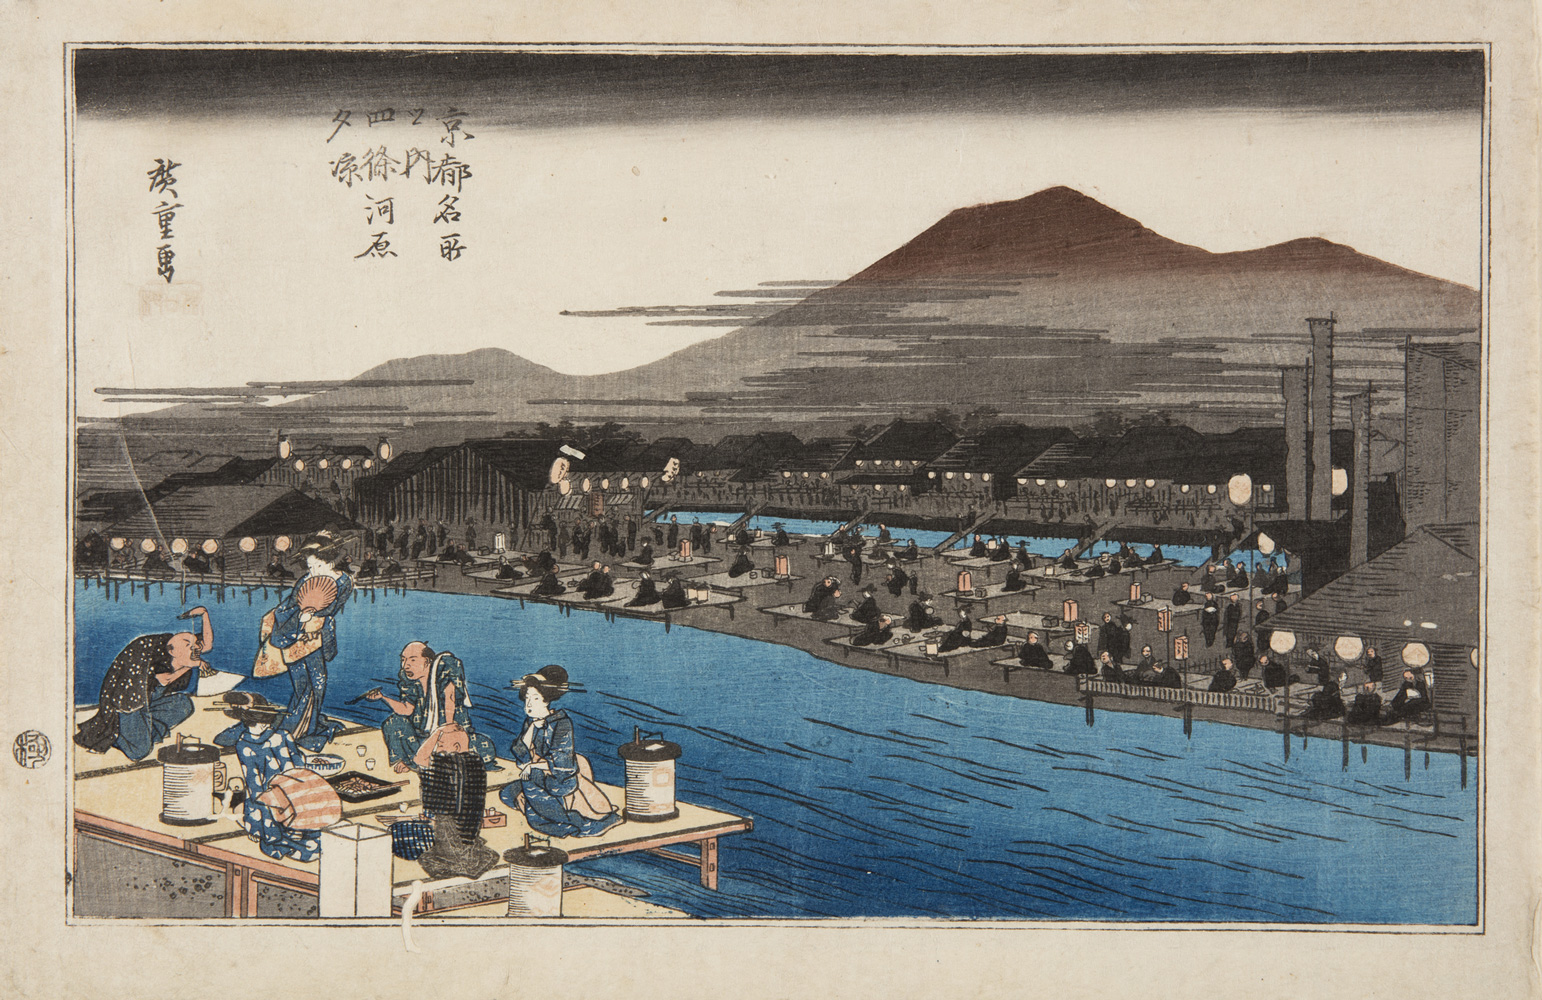 Japanese print of a landscape, in the foreground a group of two men and three women (geisha), dressed in traditional clothes, sit on a platform eating by the river bank, one woman stands and holds a fan to her face. On the other side of the river there are lots of other platforms and people, mountains rise up behind.